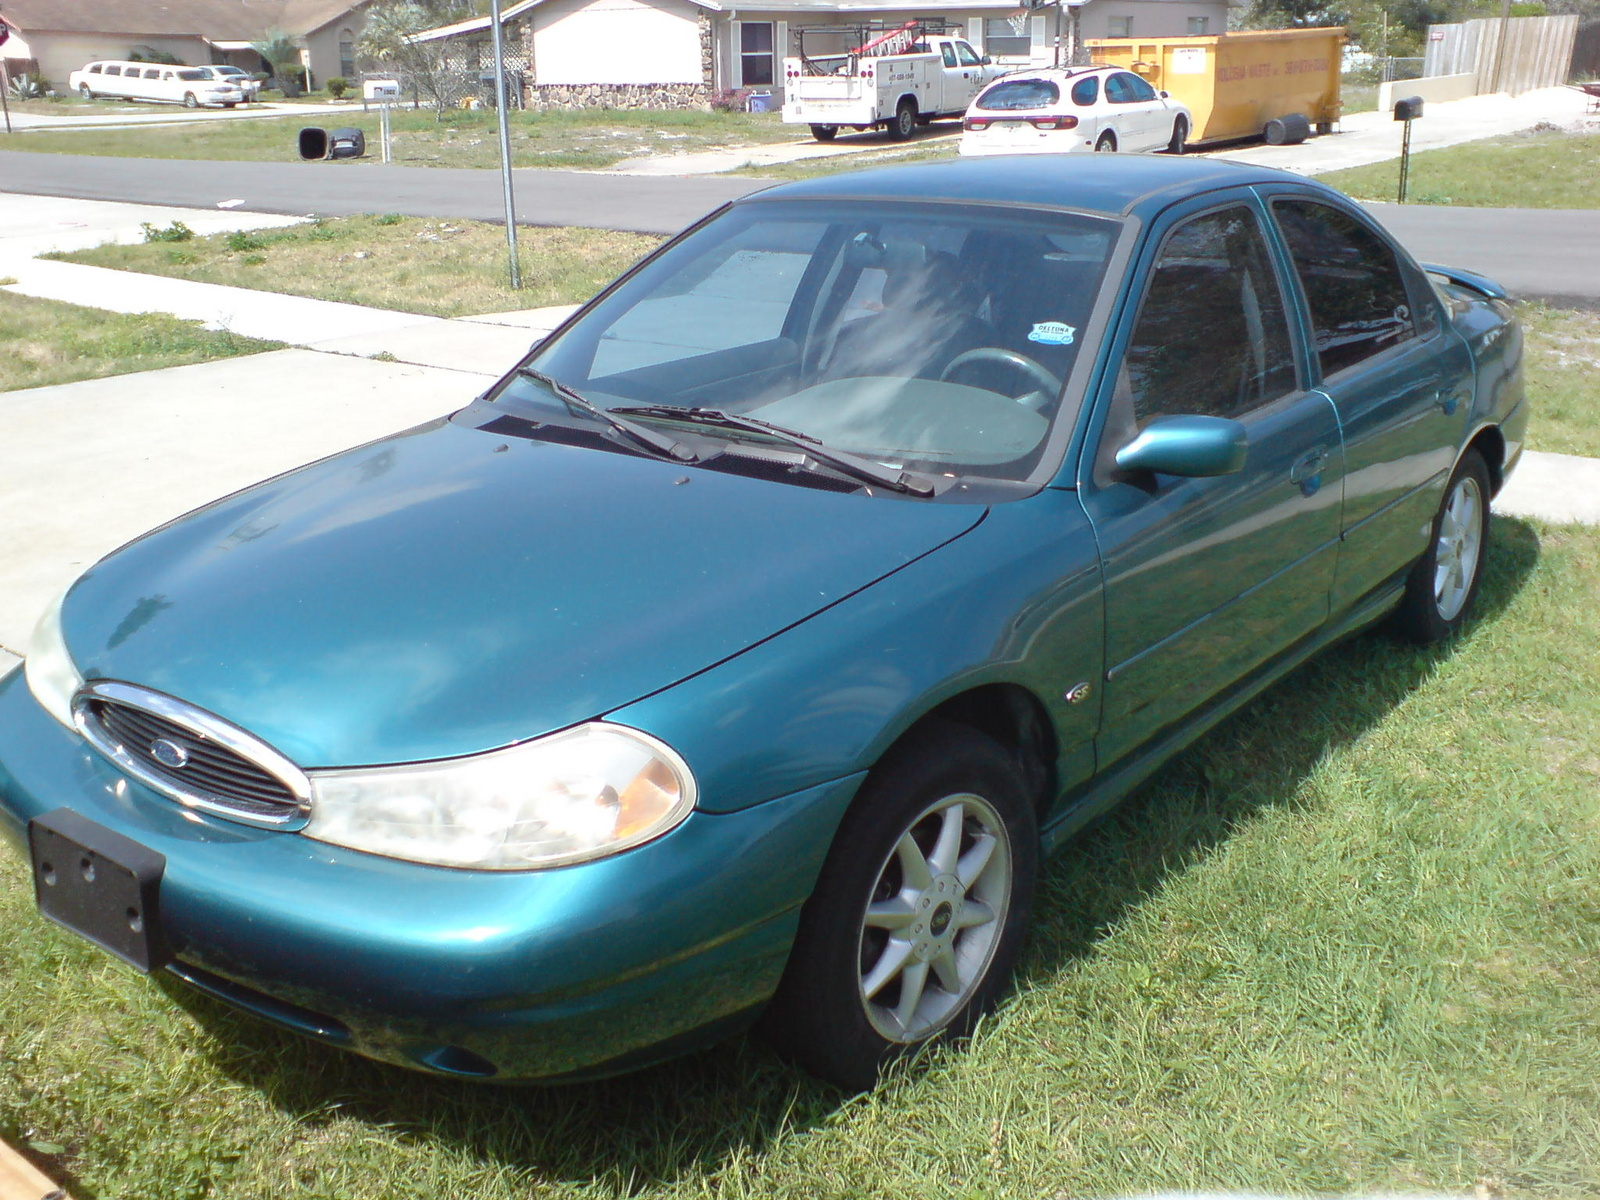 Picture of 1998 Ford Contour 4 Dr SE Sedan, exterior